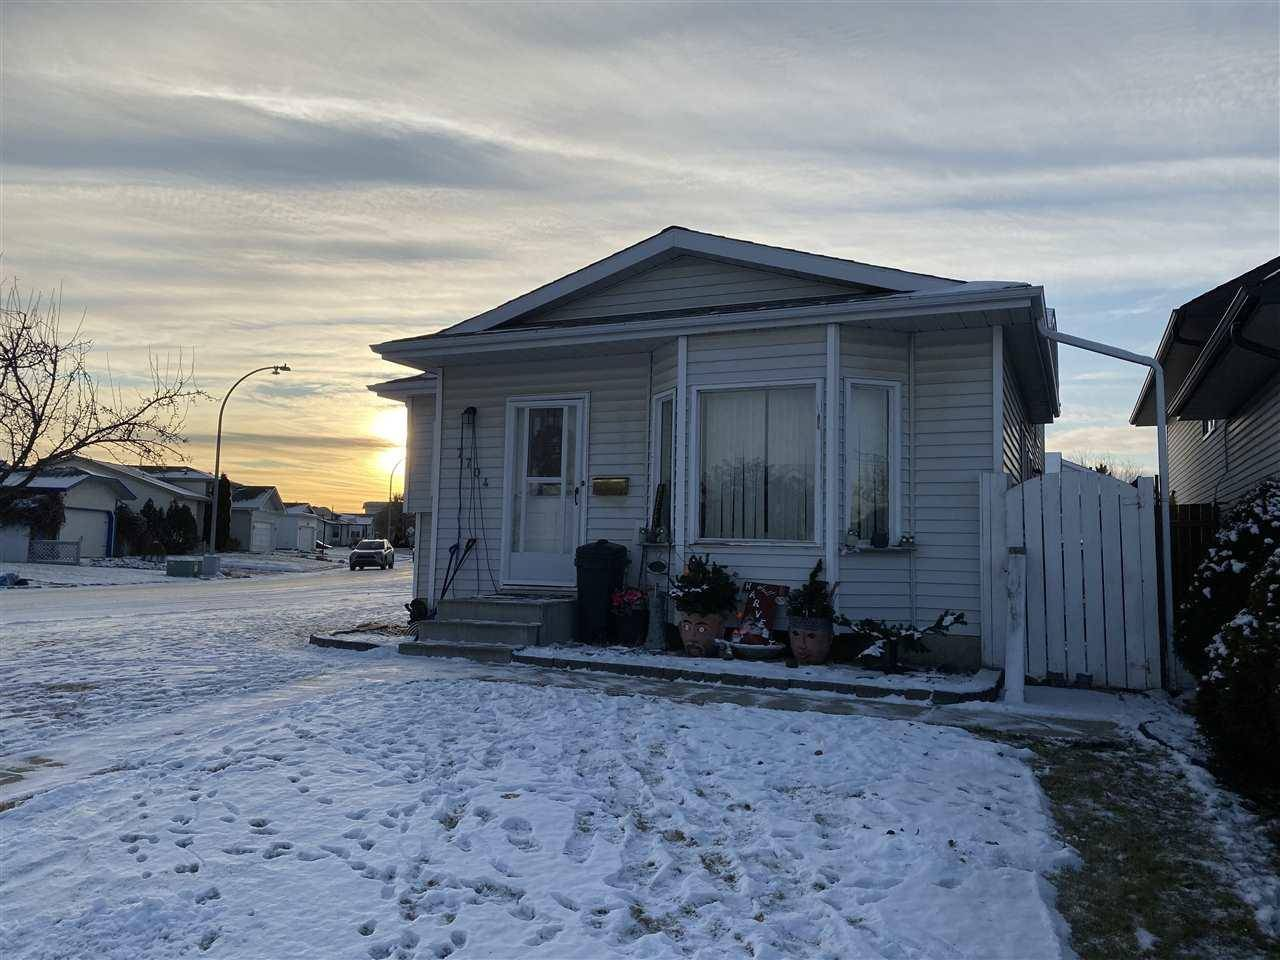 House for sale at 7704 183b St Nw Edmonton Alberta - MLS: E4179229